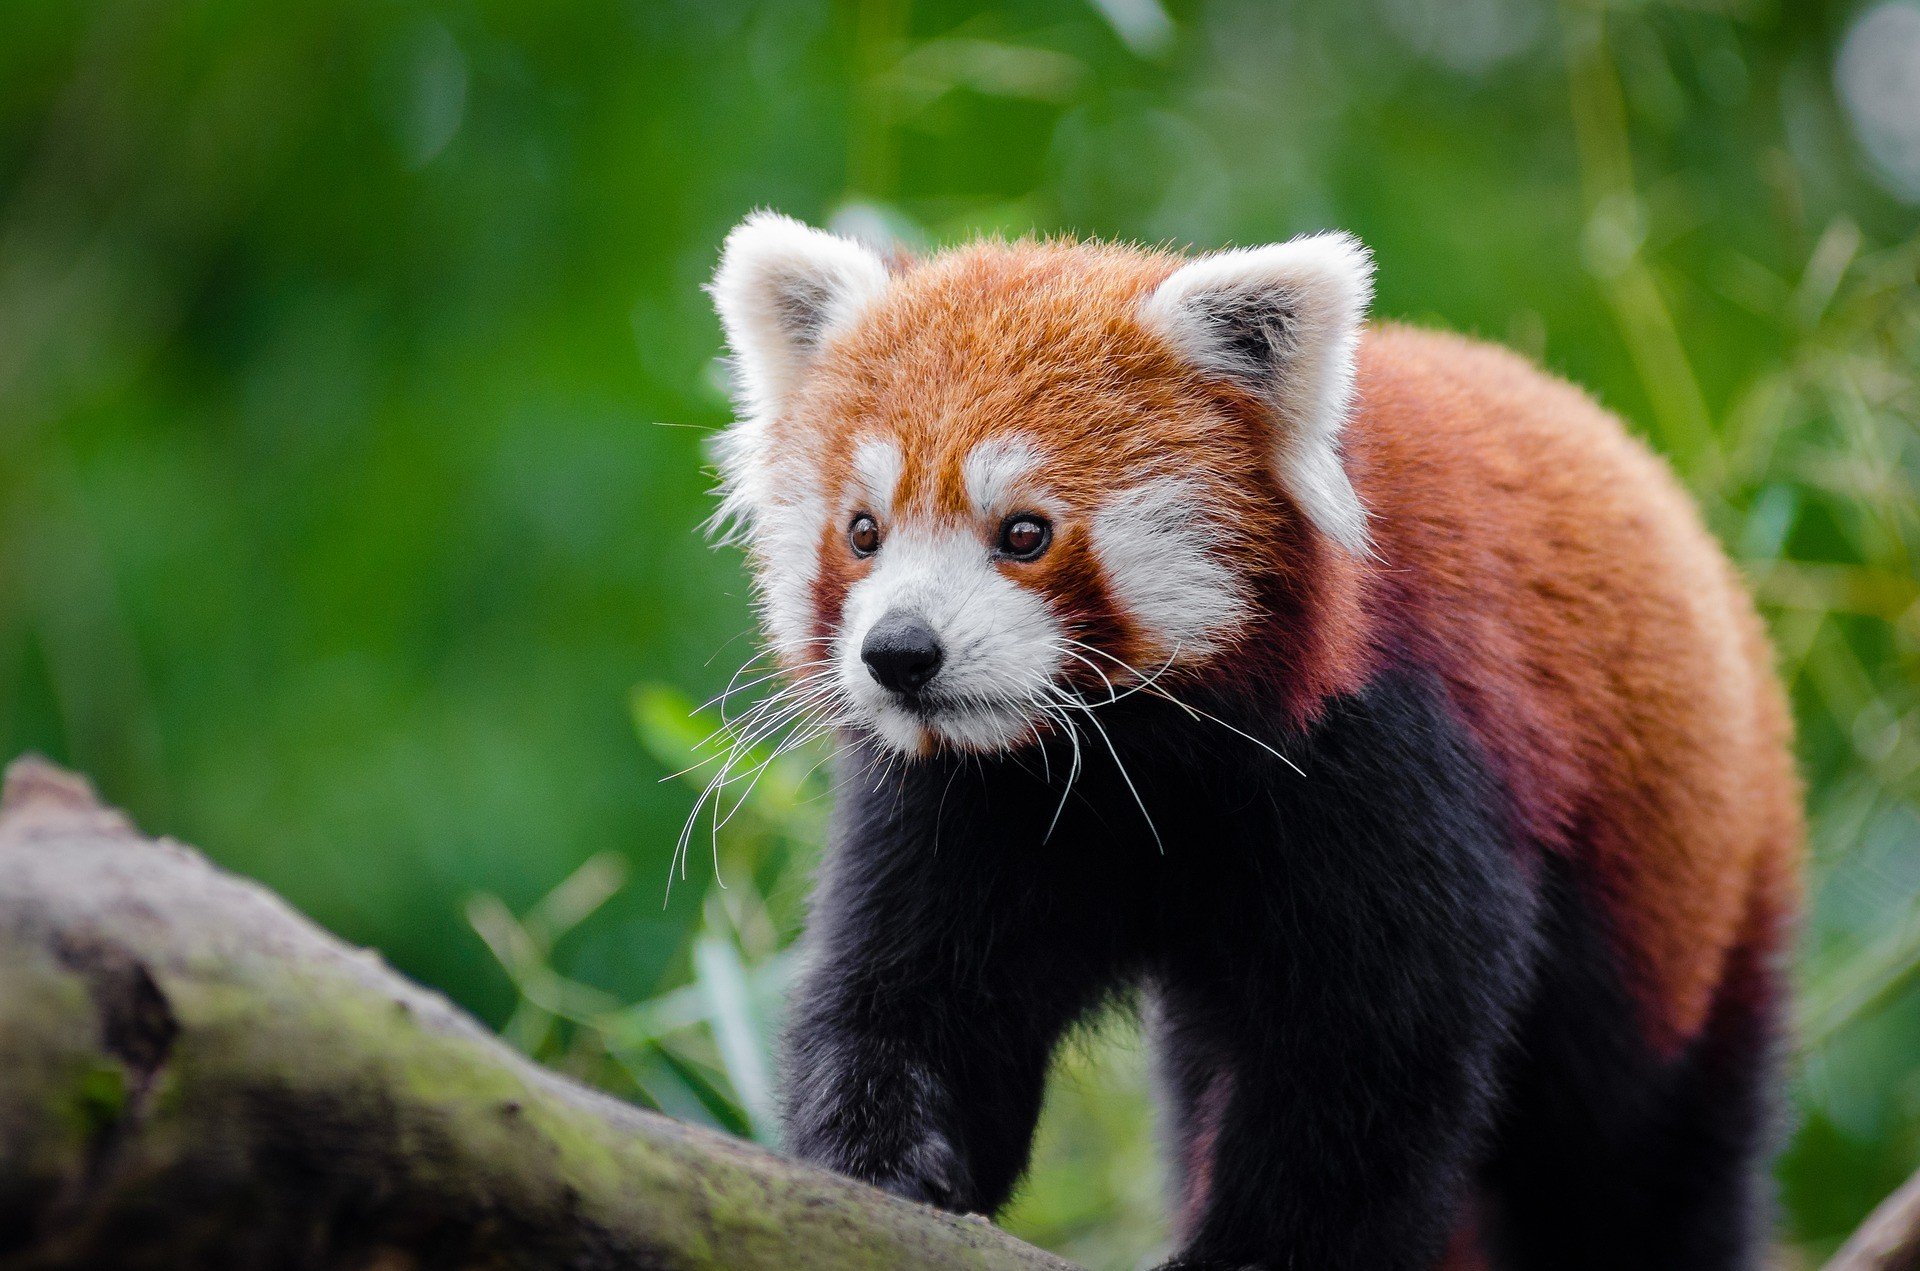 An endangered red panda